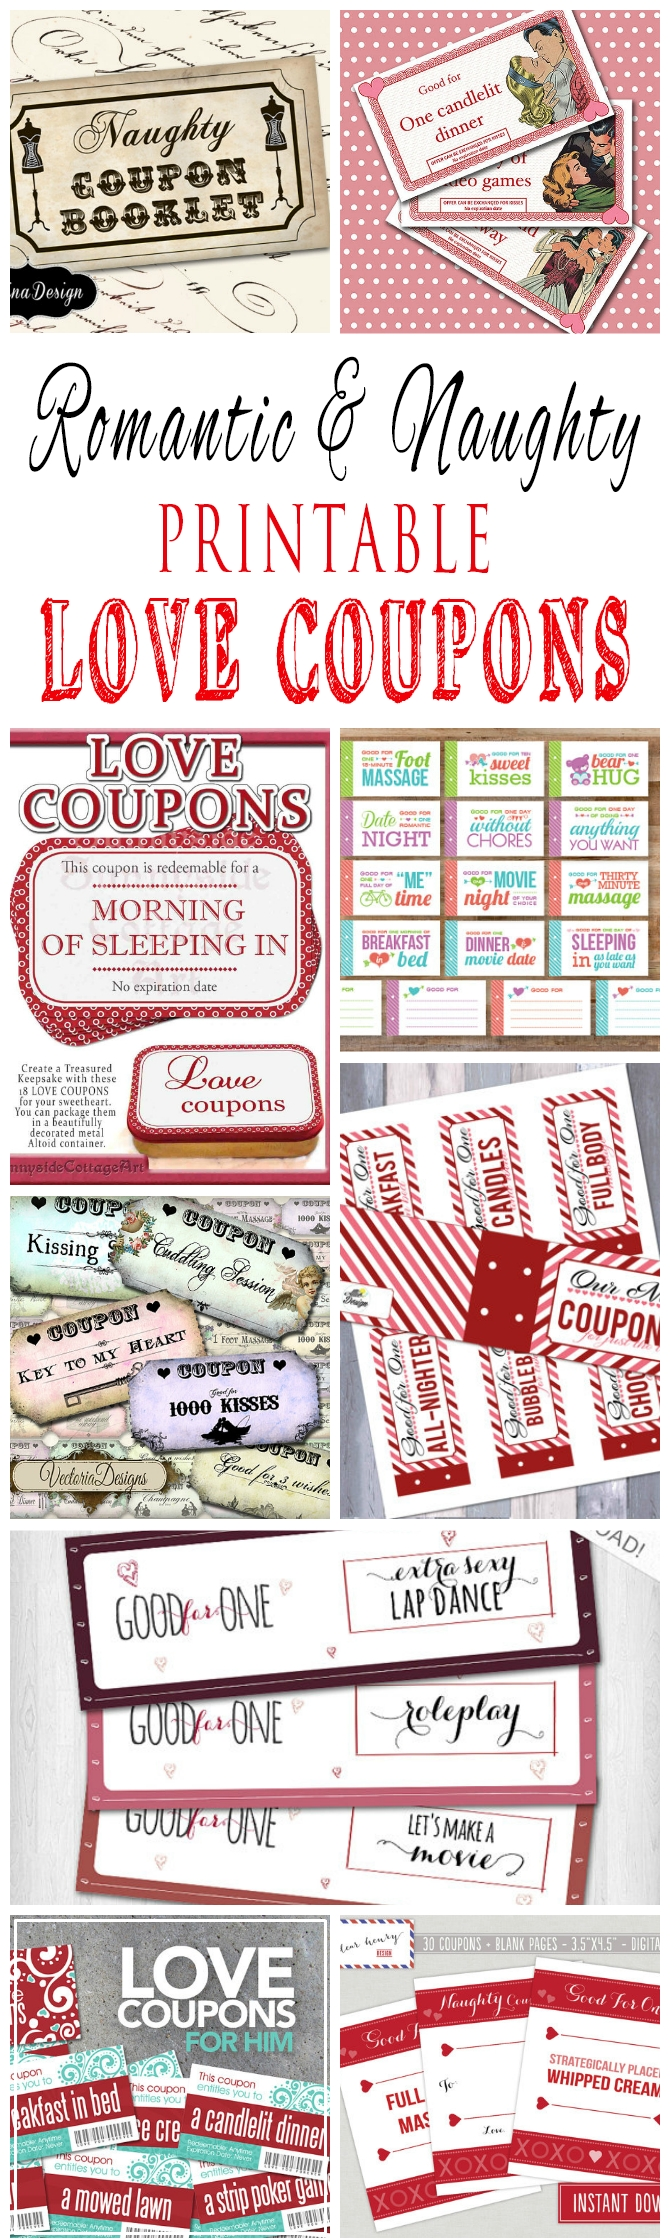 10 Perfect Love Coupon Ideas For Husband romantic and naughty printable love coupons for him glitter n spice 7 2020